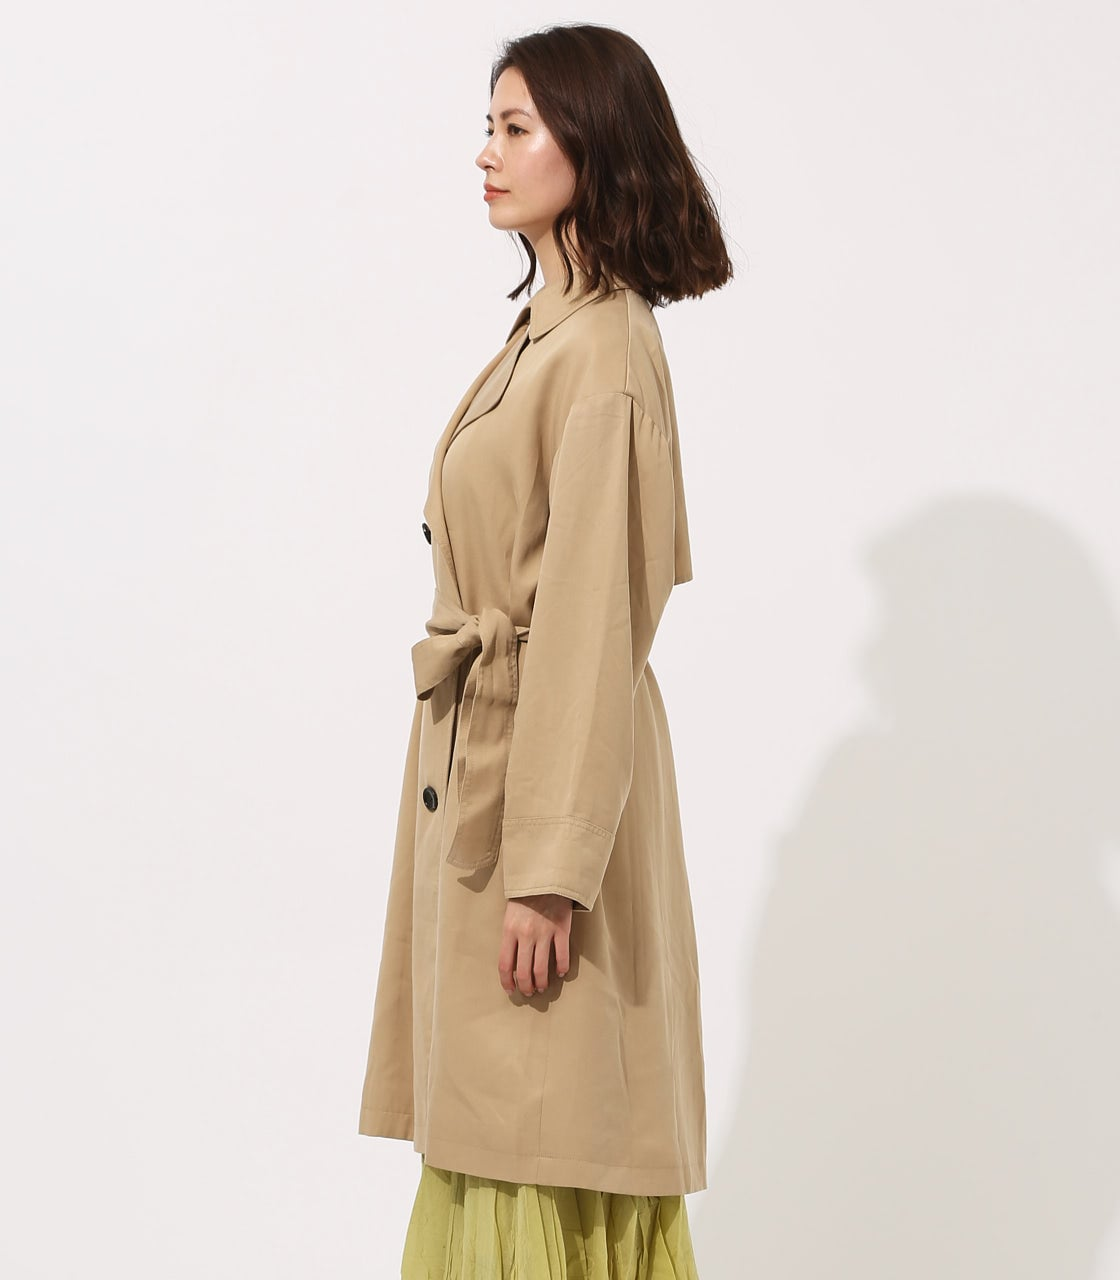 LYOCELL TRENCH COAT 【MOOK49掲載 90015】 詳細画像 BEG 6